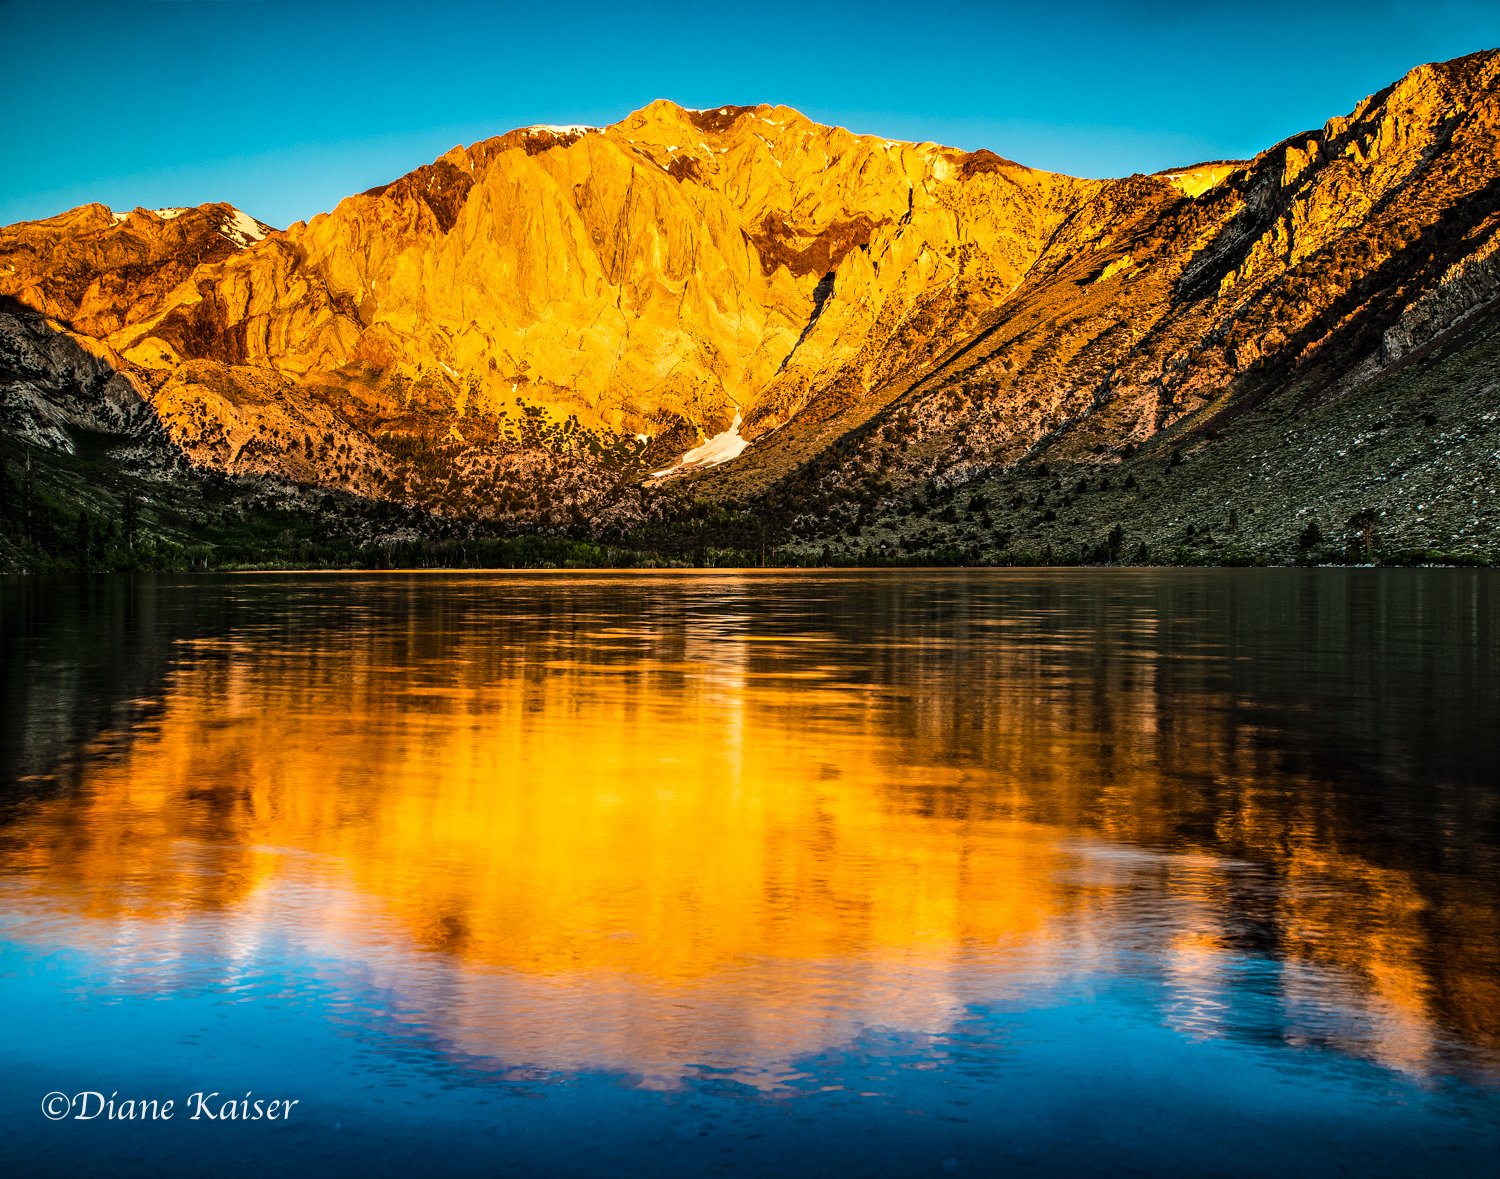 Nope.  You are correct!  This is not from Mammoth Lakes.  Diane took this at a different date than the ones I posted of Convict Lake earlier.  But, I do not want you to miss out on her excellent photography!  She was using a new to her Nikon D810 with a new lens and she was quite the trooper figuring it all out and then captured the full magnificence of sunrise on this popular mountain.  I just love her reflection.